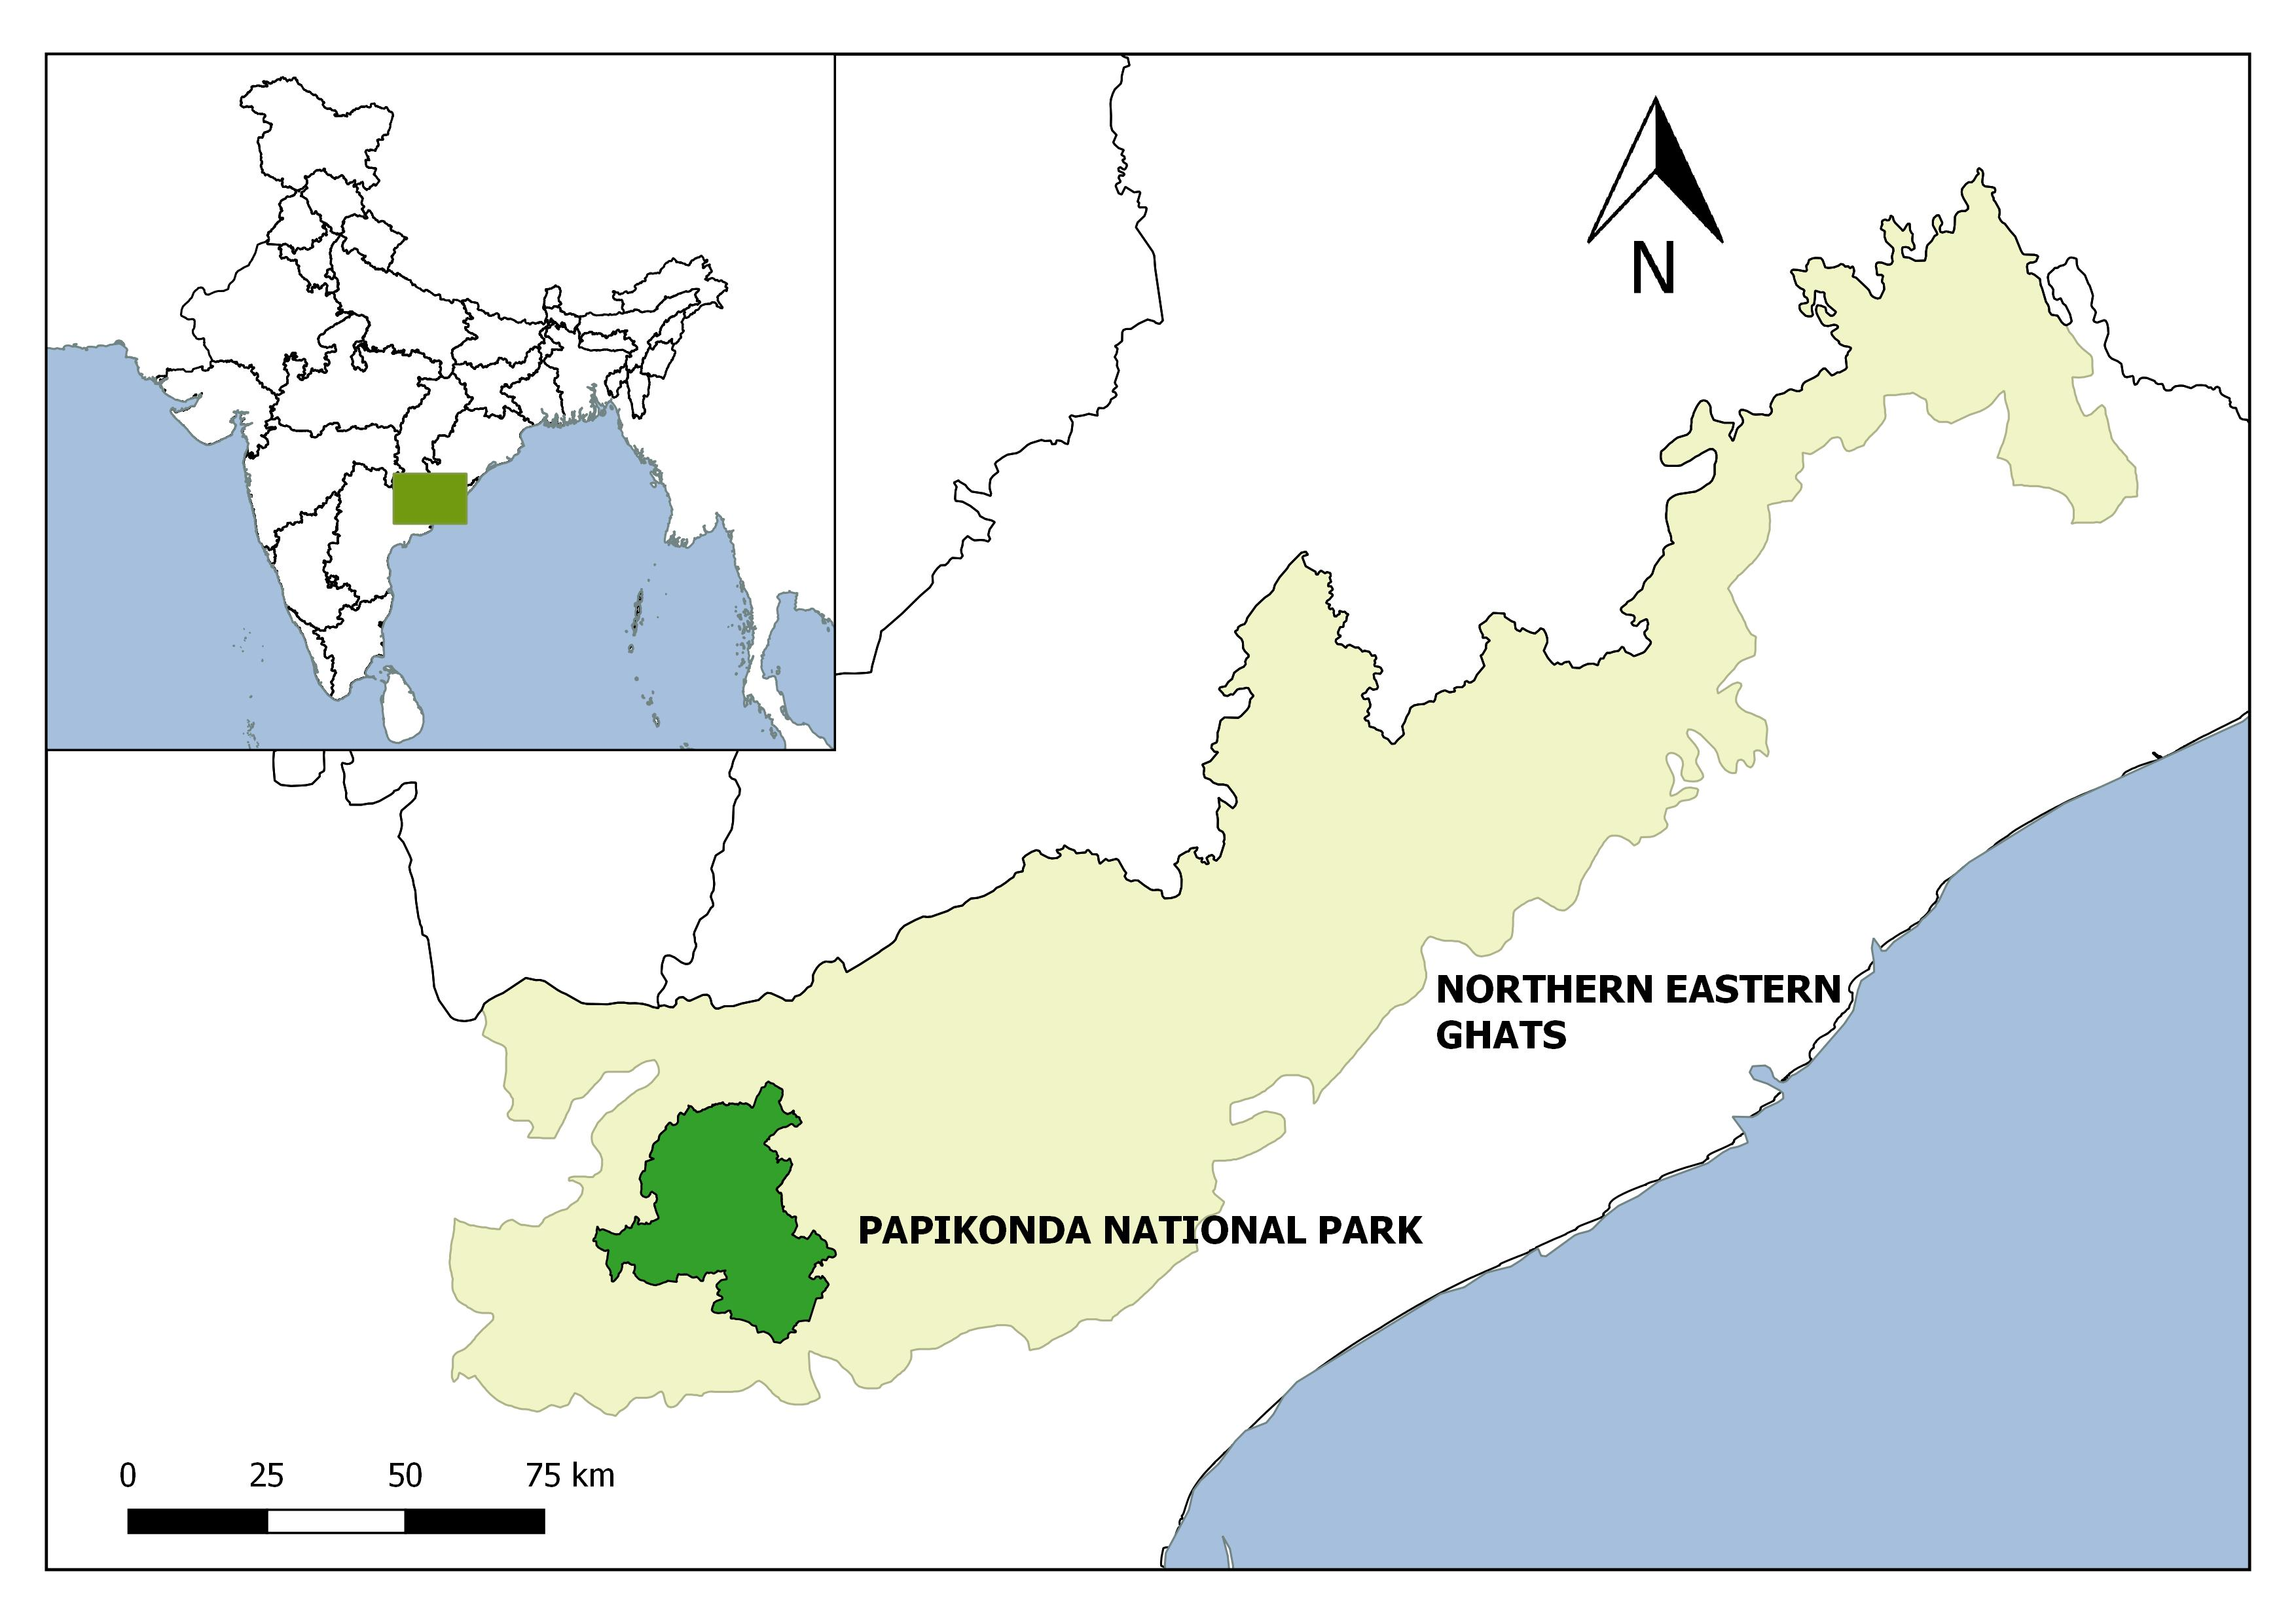 Northern-eastern-ghats-map